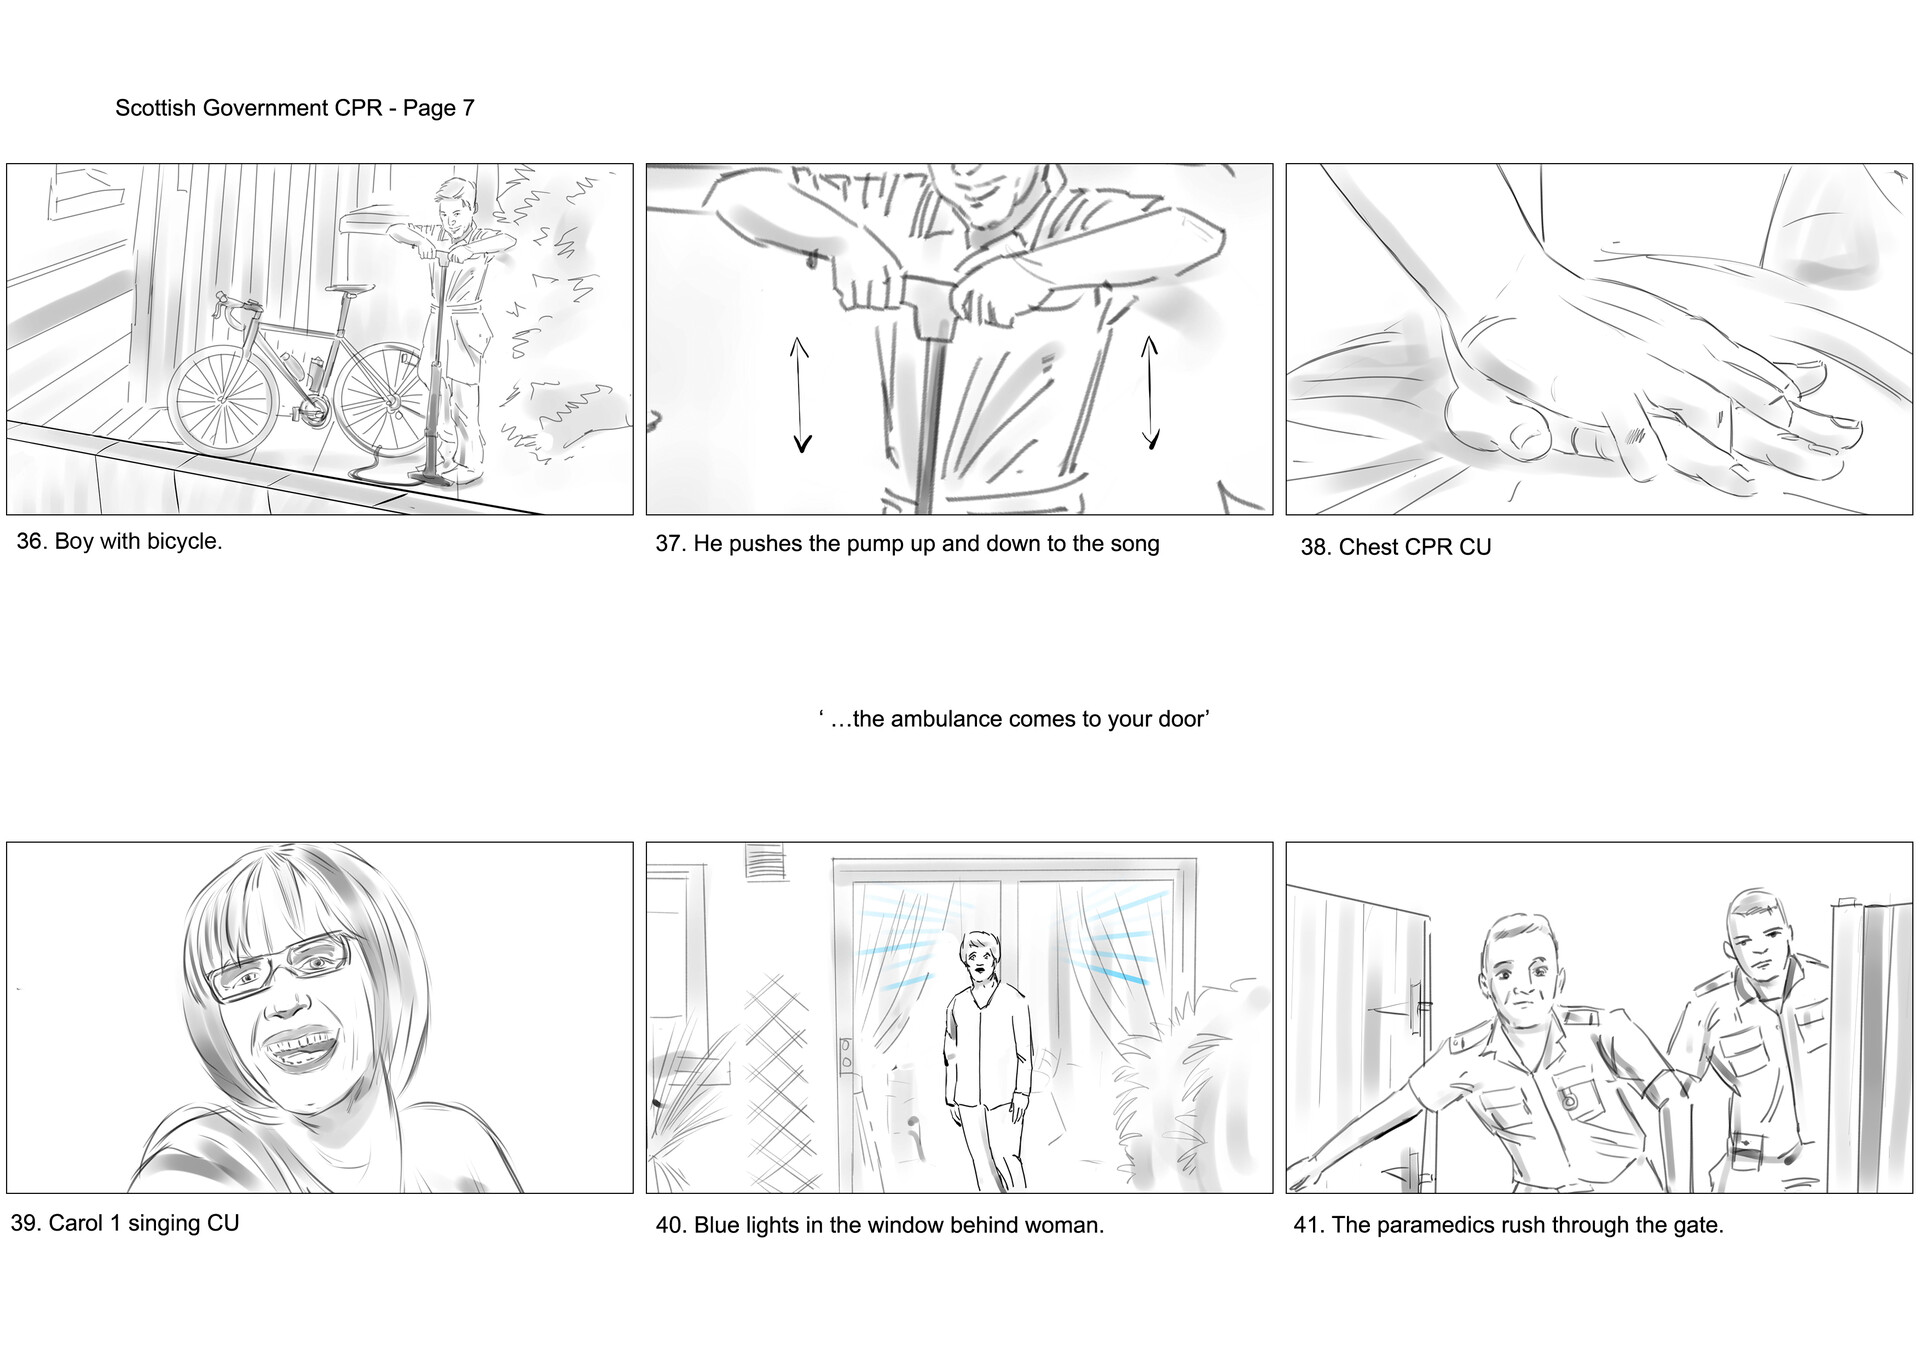 David newbigging save a life for scotland storyboards v2 7